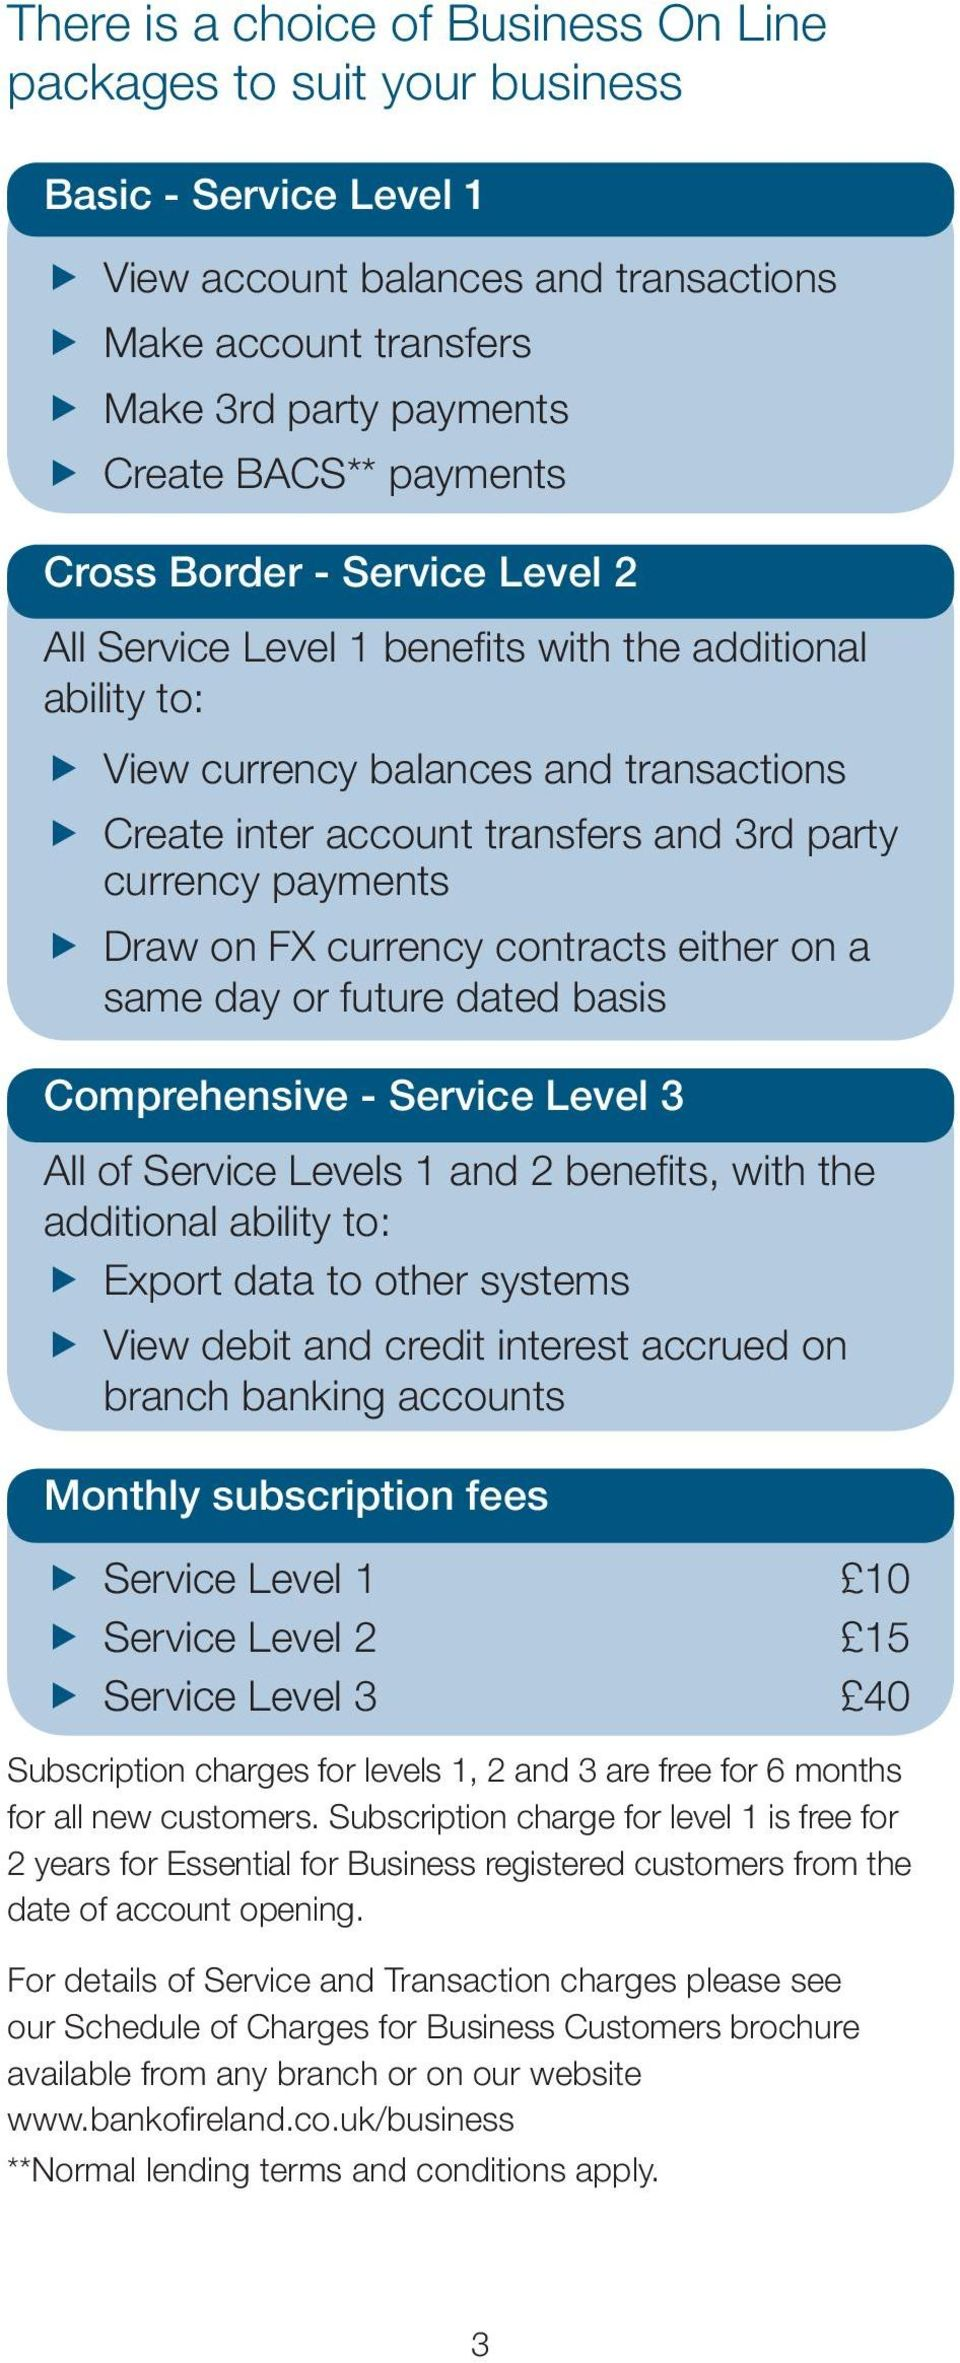 payments Draw on FX currency contracts either on a same day or future dated basis Comprehensive - Service Level 3 All of Service Levels 1 and 2 benefits, with the additional ability to: Export data